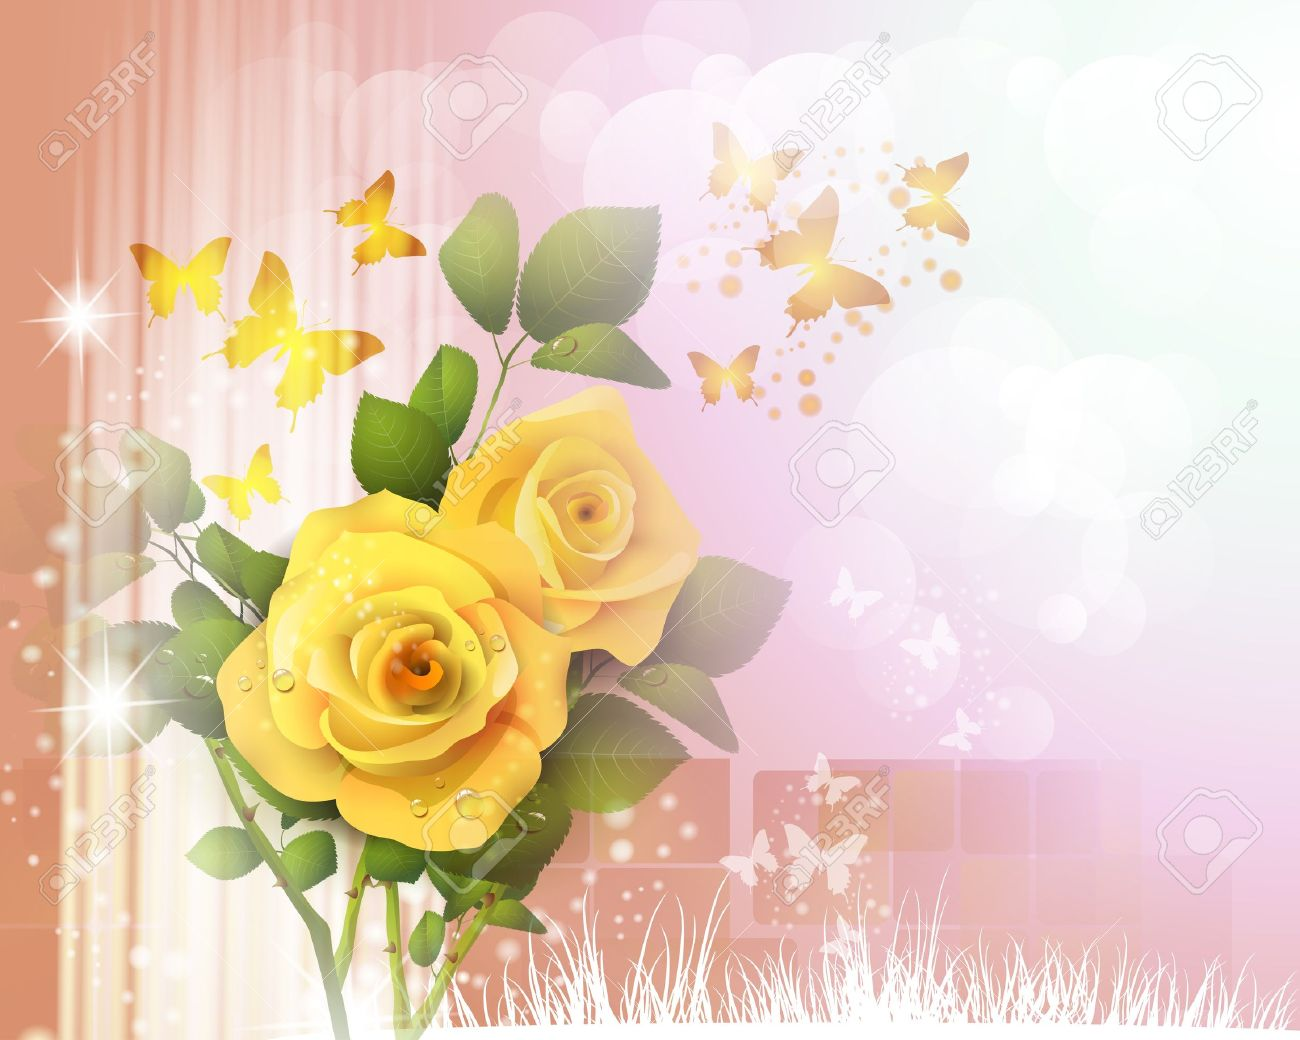 Background with roses and butterflies Stock Vector - 14499436